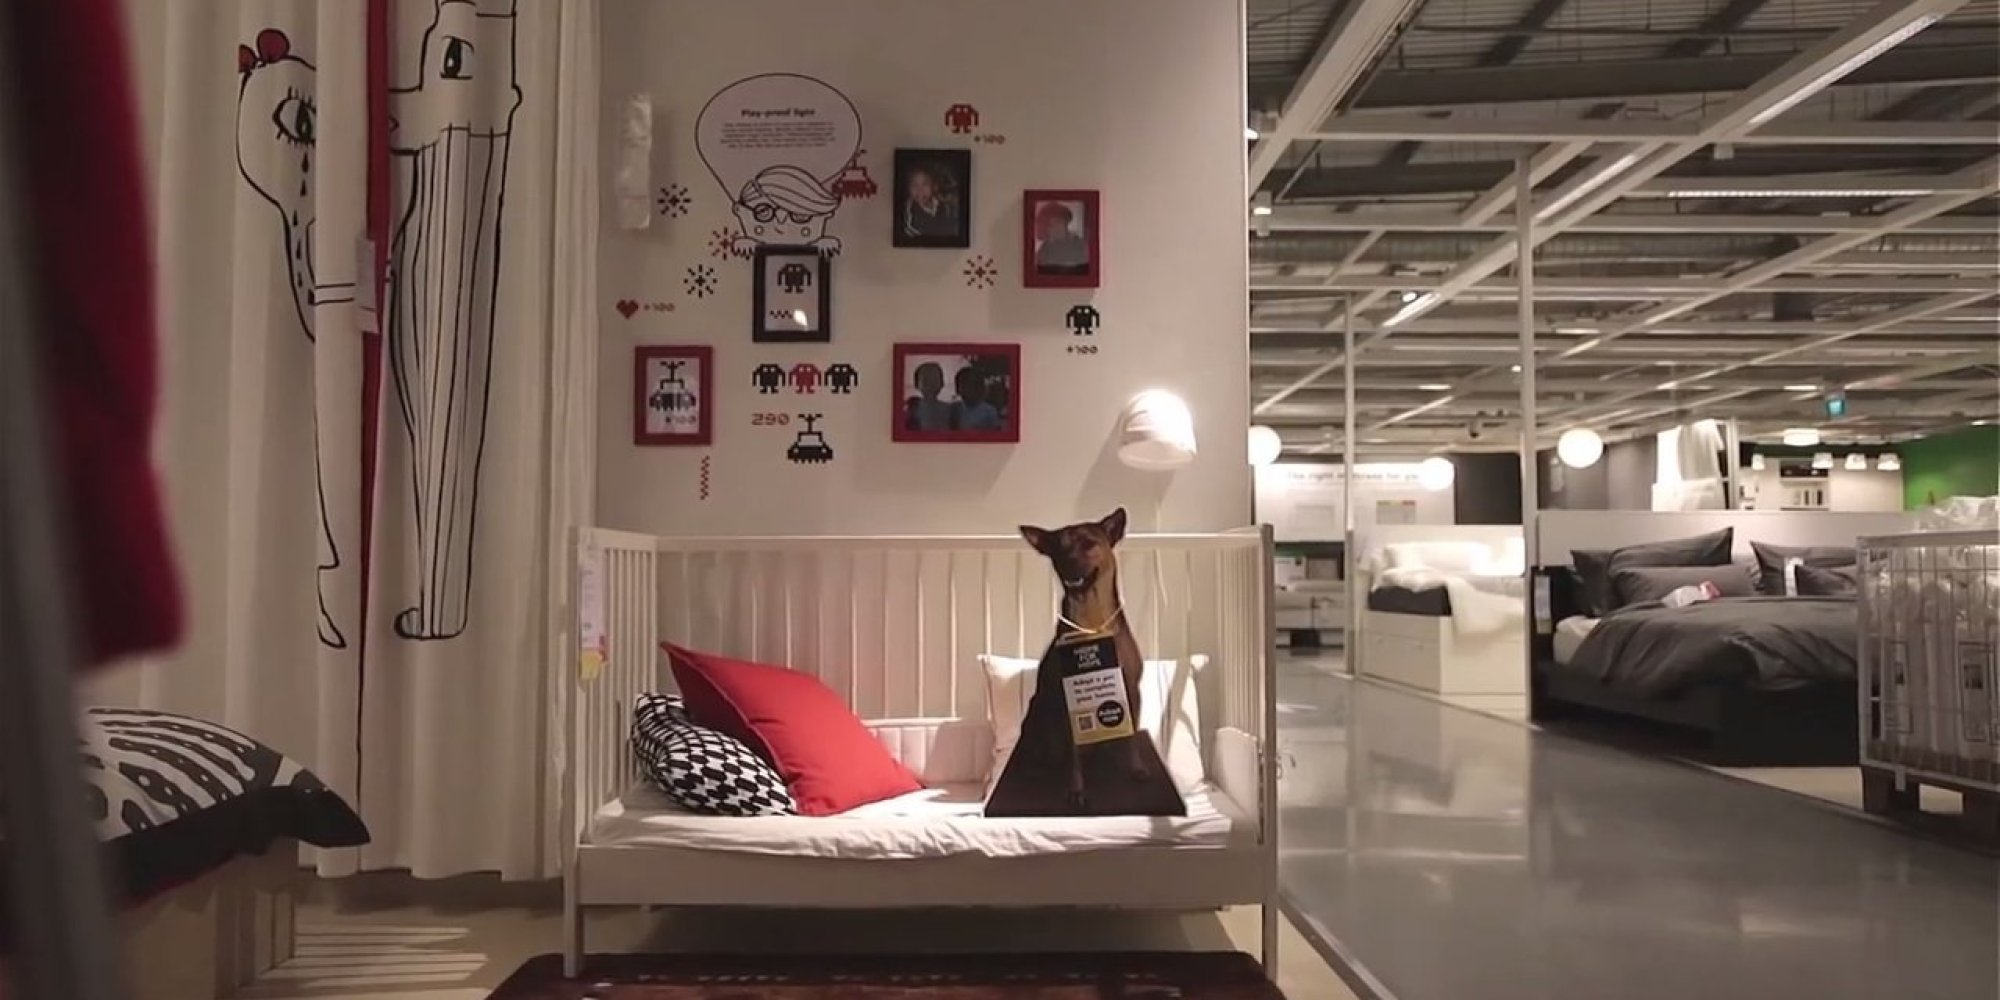 Ikea Advertises Adoptable Dogs In Stores, Because Every Home Needs A Rescue Pup